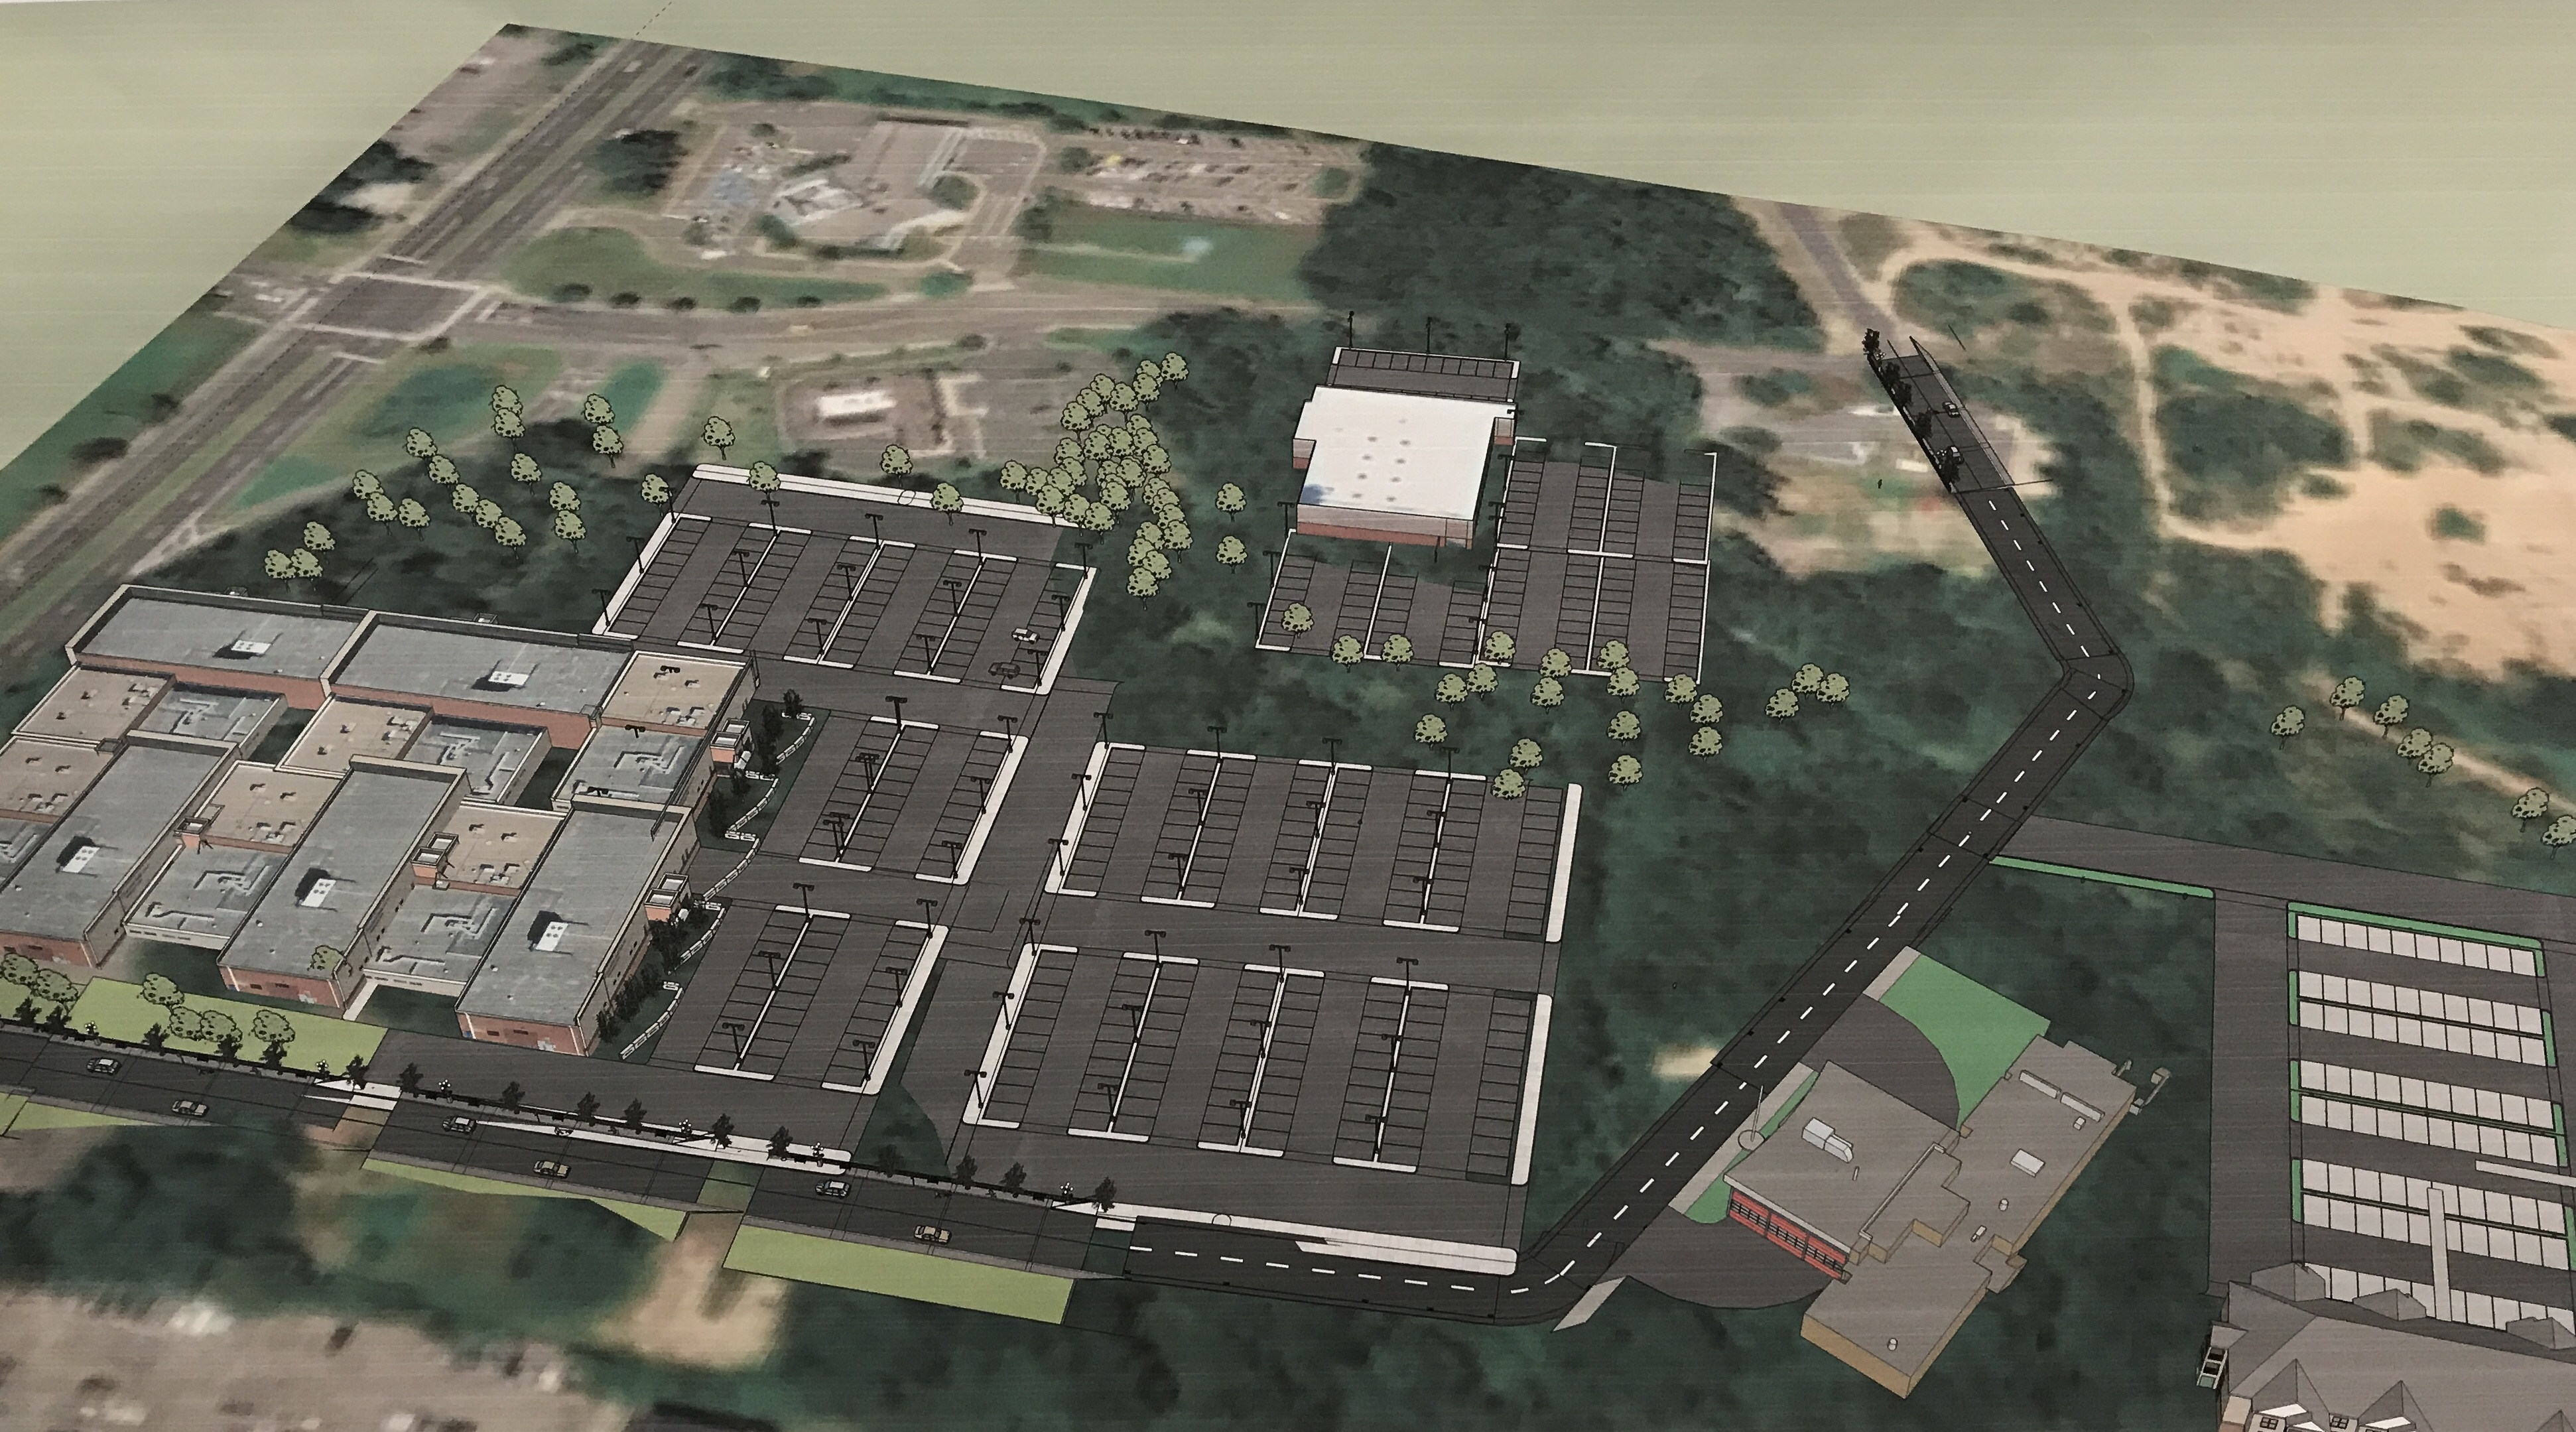 A planned 22-acre redevelopment plan in Toms River. (Photo: Daniel Nee)